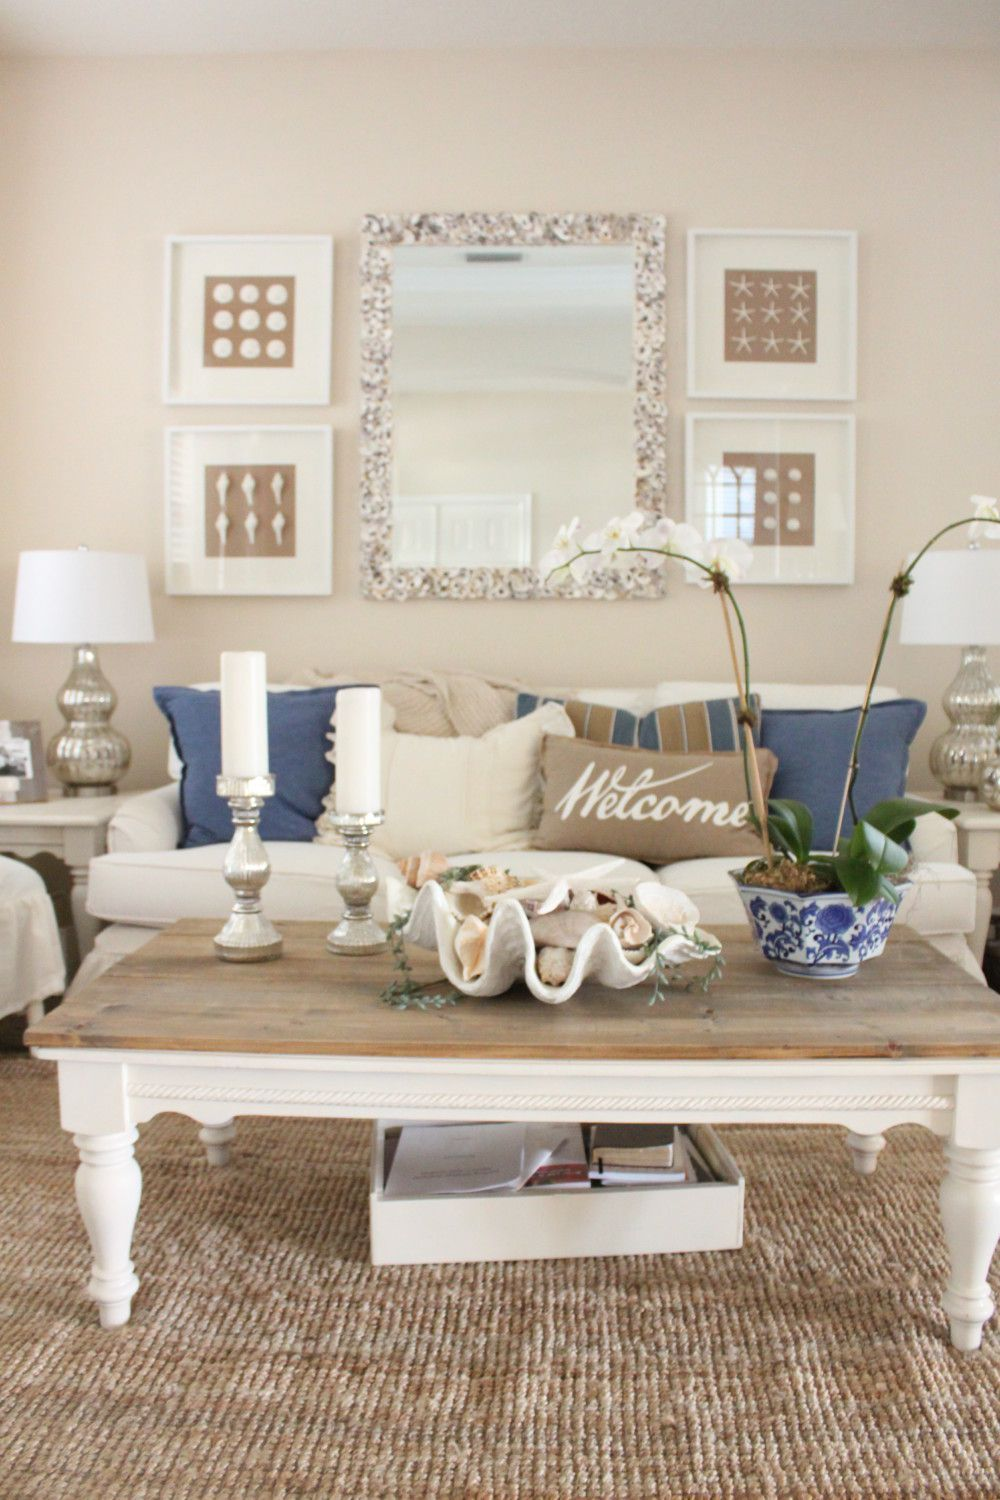 Diy Oyster Shell Mirror Starfish Cottage Blue And White Li